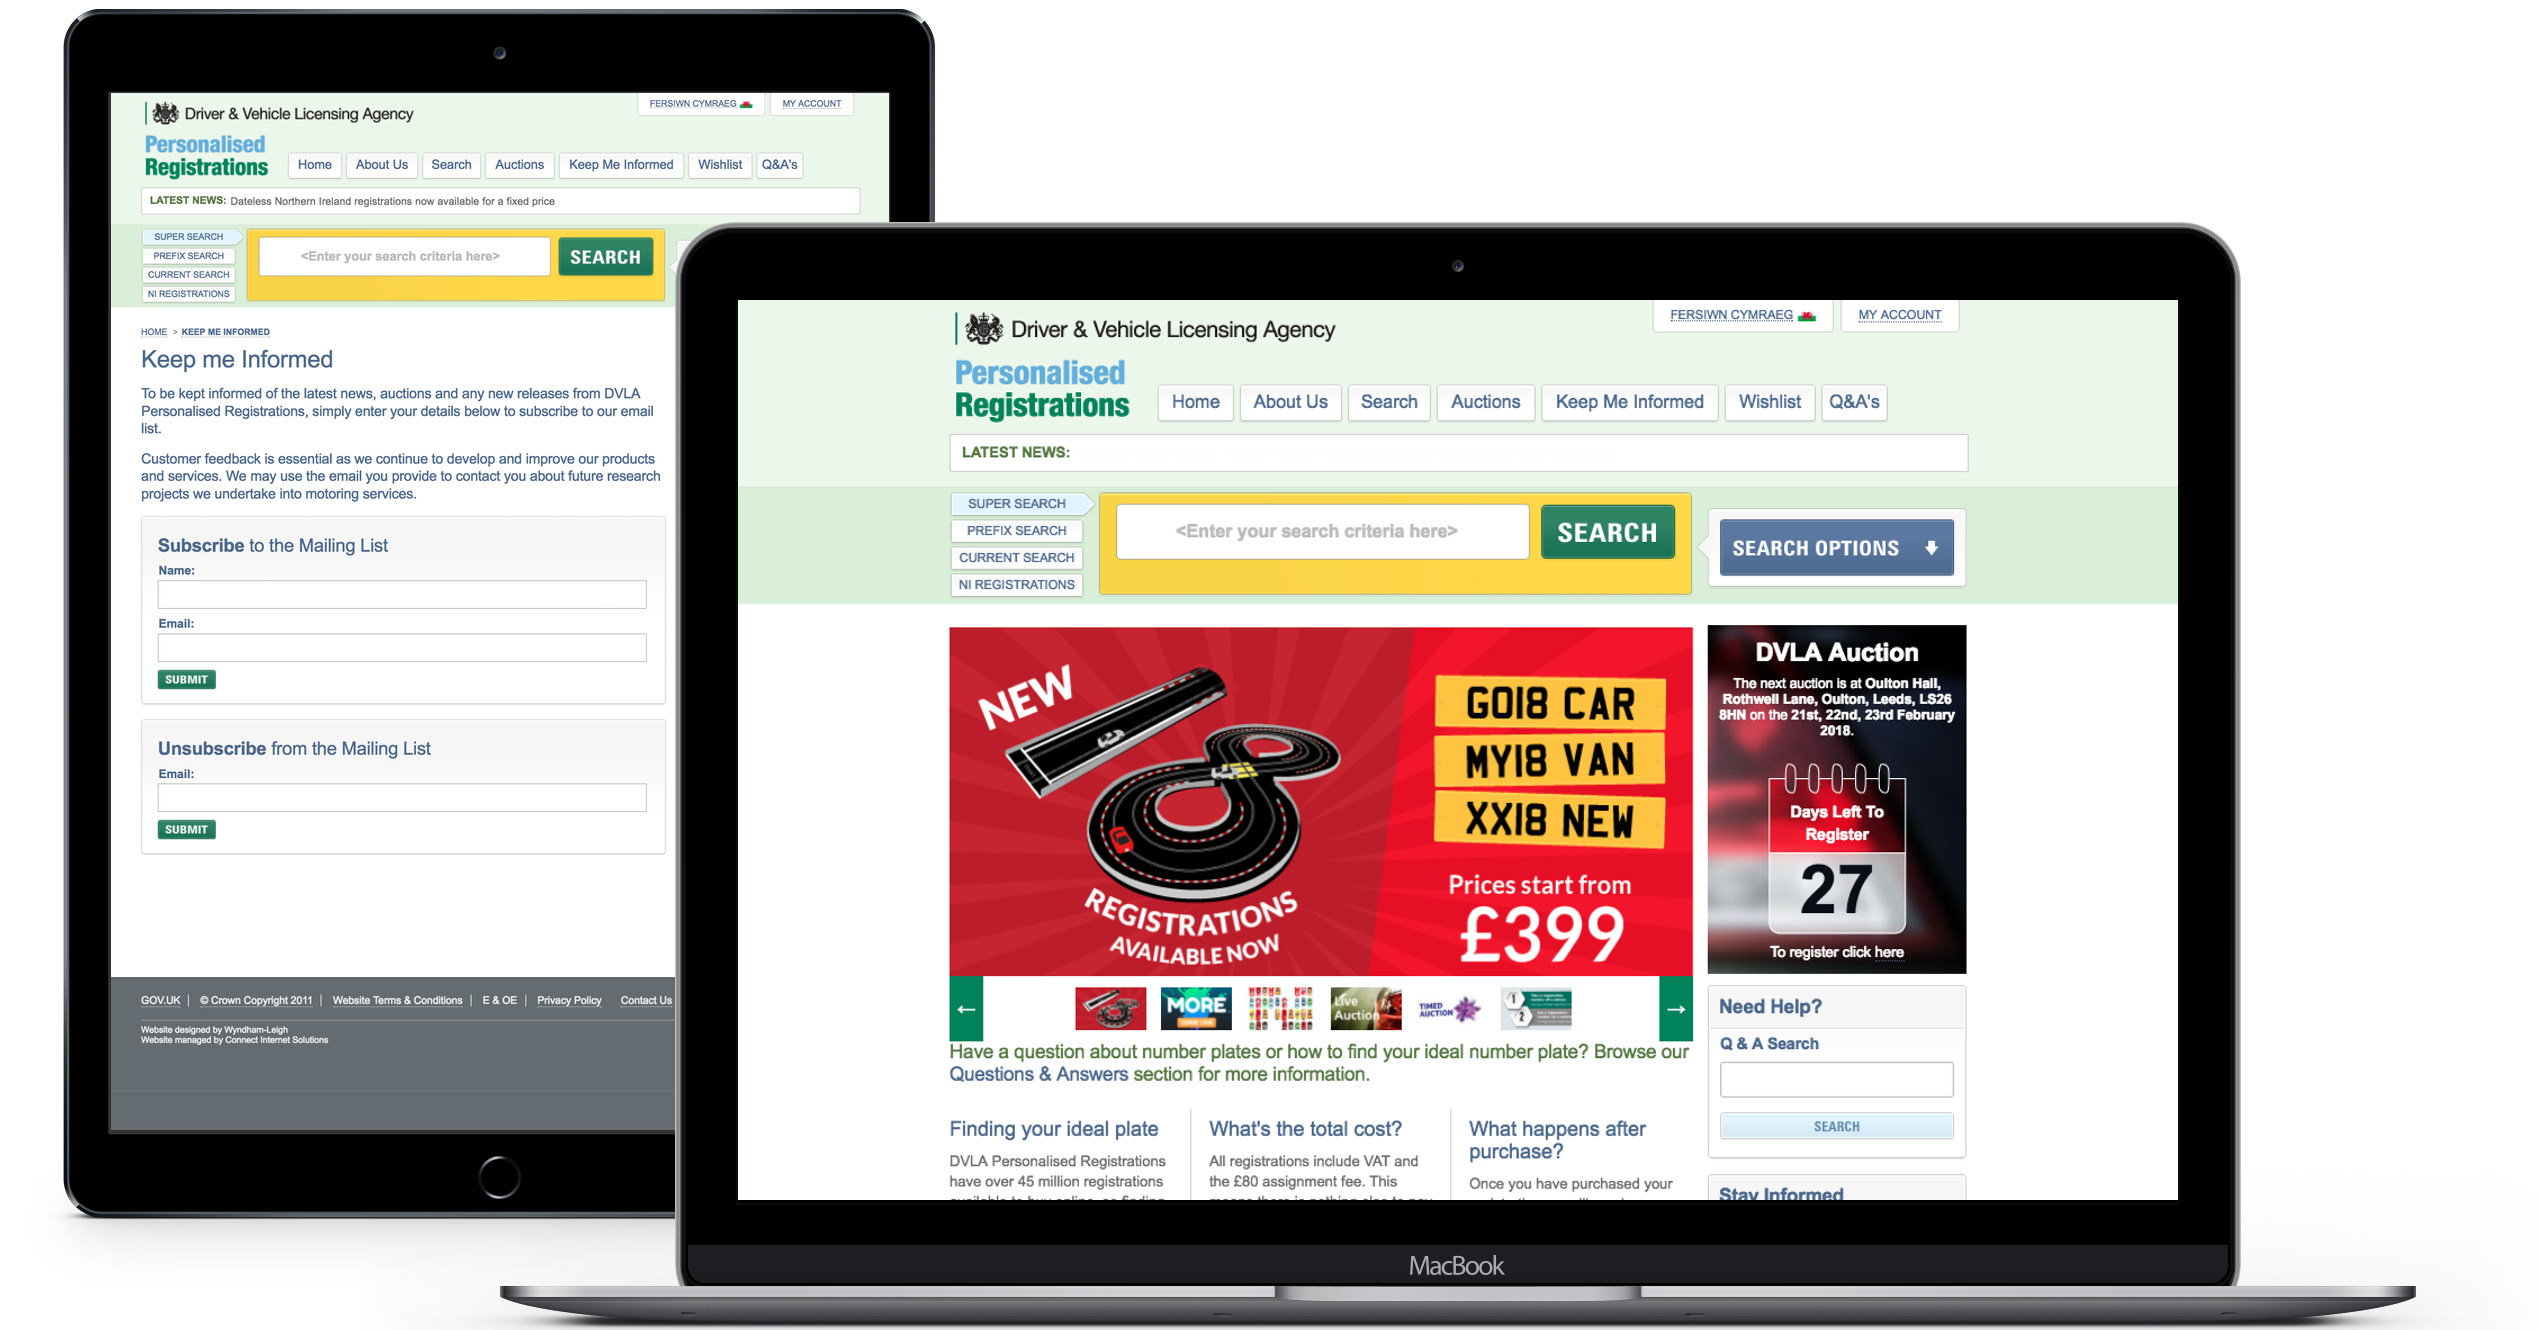 DVLA Personalised Registrations website displayed on iPad and Macbook